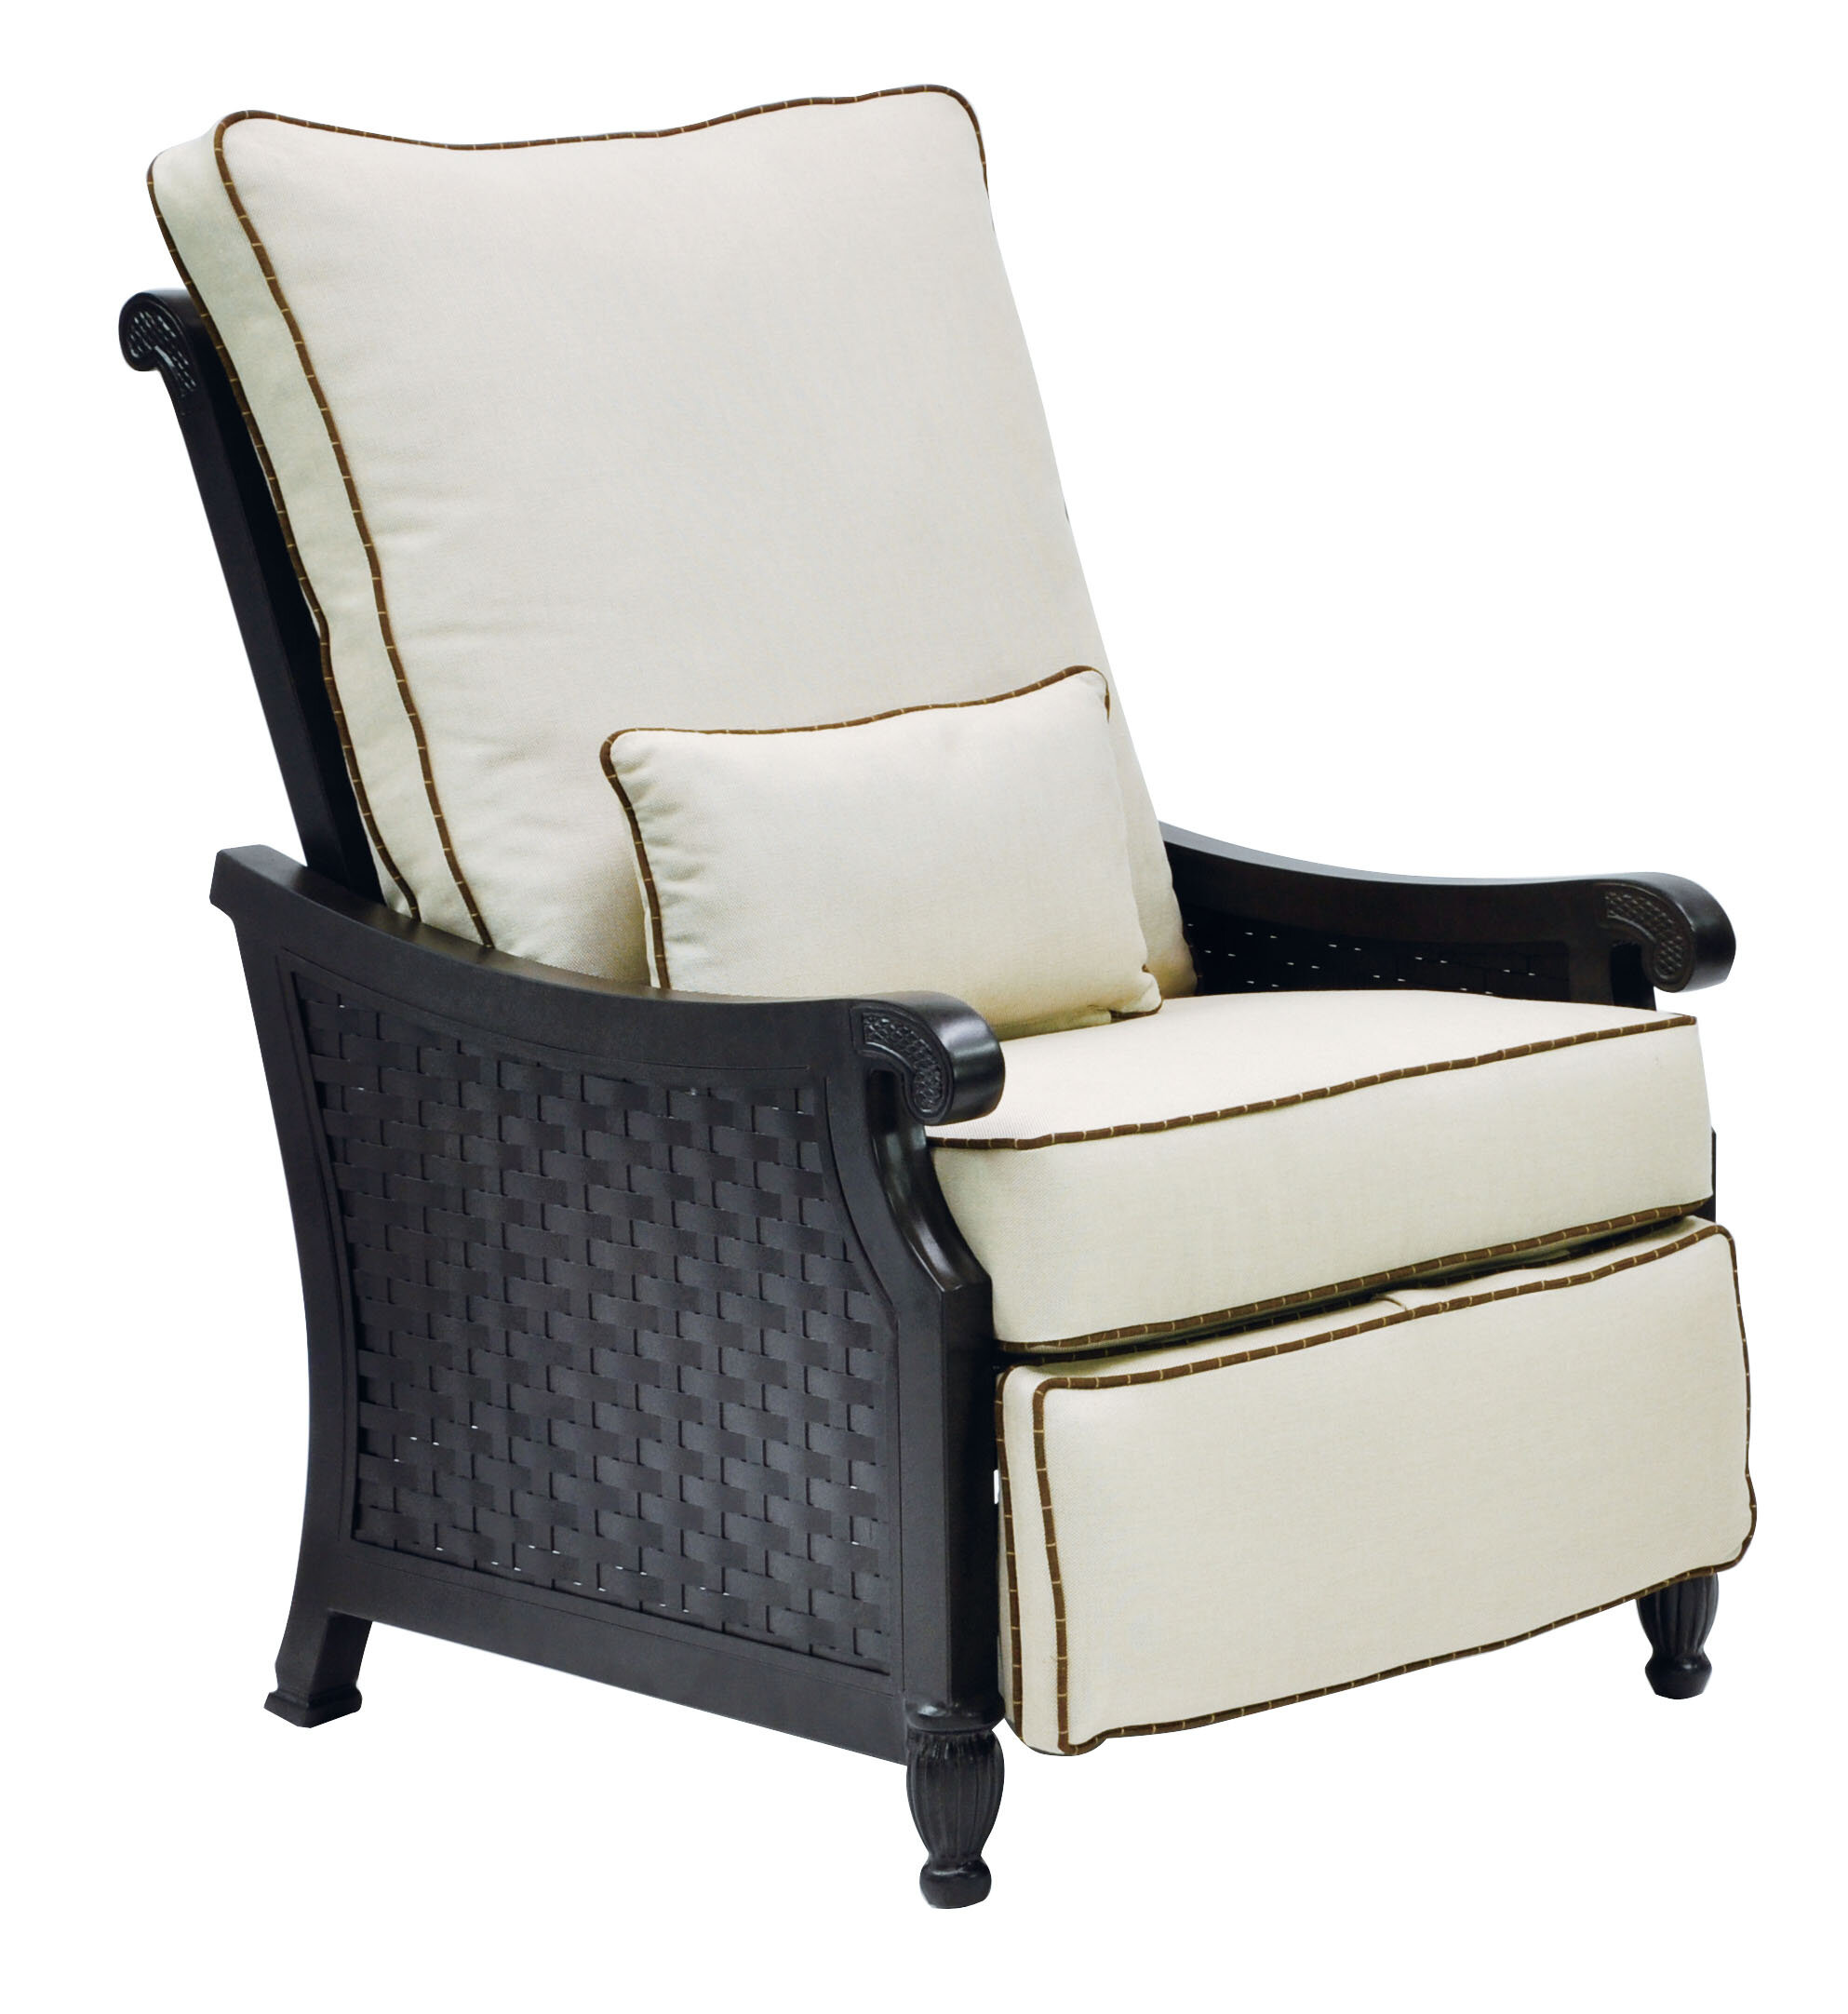 Leona Jakarta 3 Position Recliner Patio Chair with Cushions